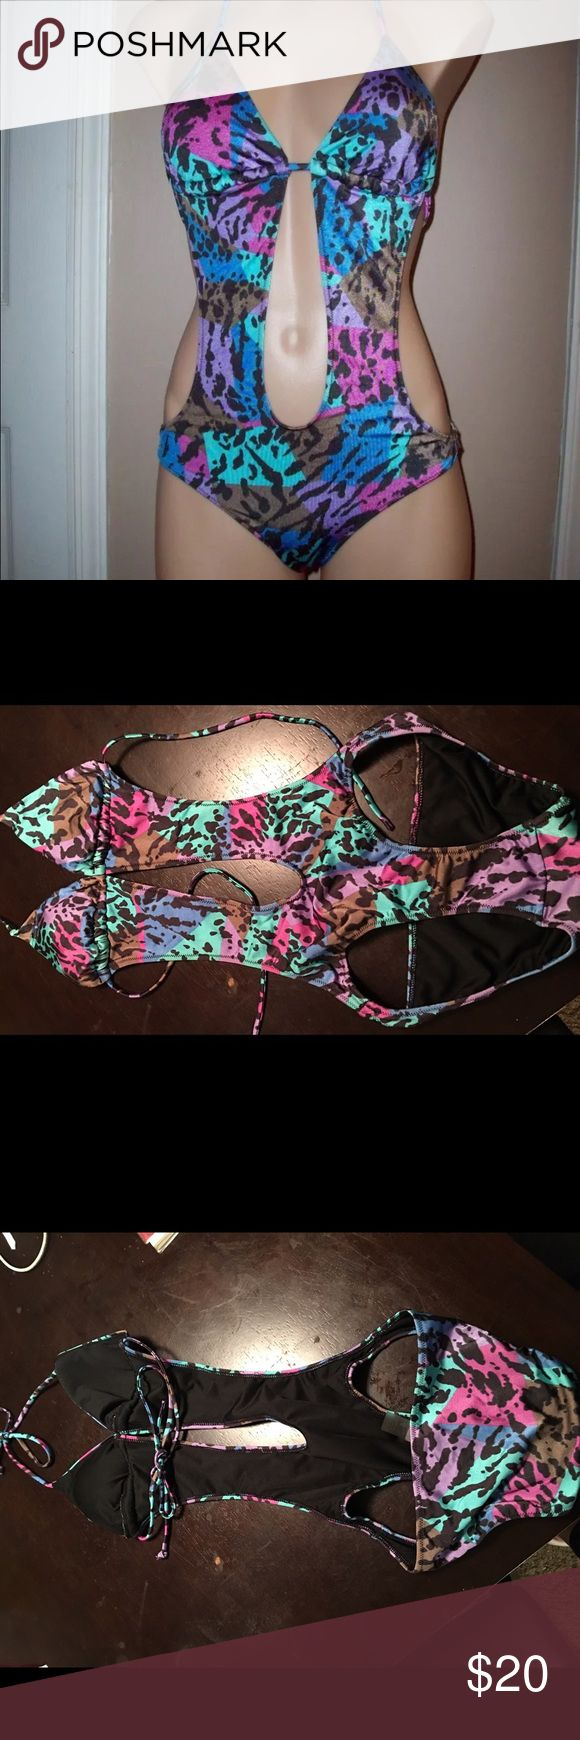 Selling this Victoria's Secret swimsuit on Poshmark! My username is: dongxue. #shopmycloset #poshmark #fashion #shopping #style #forsale #Victoria's Secret #Other